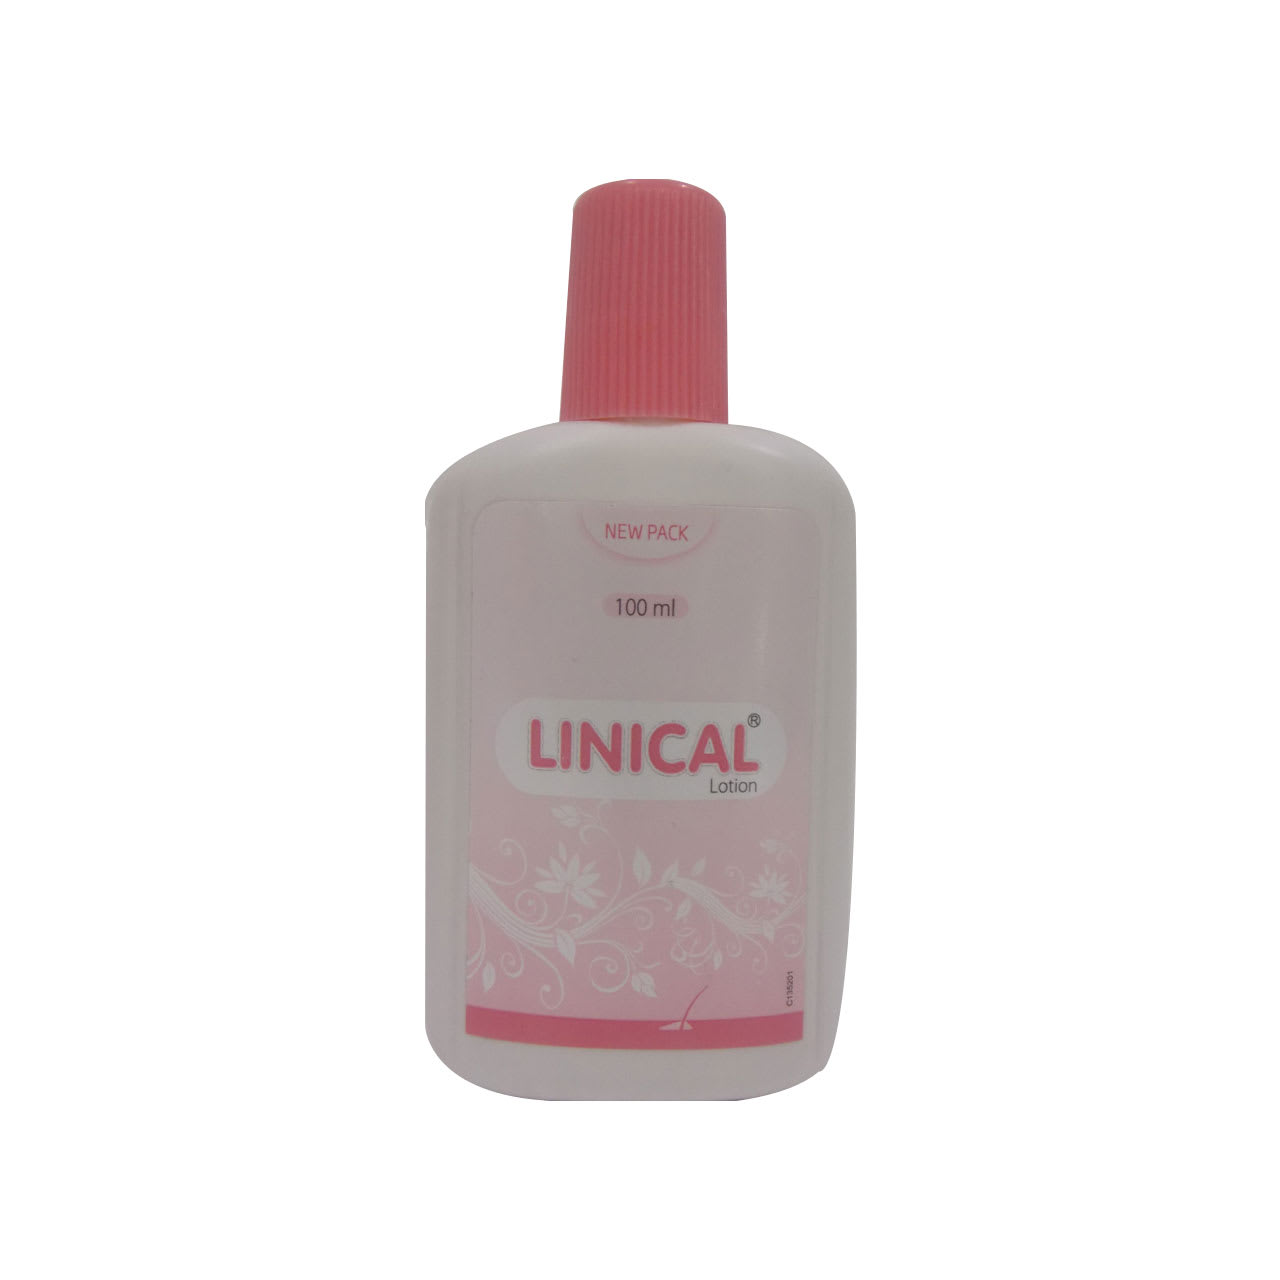 Linical Lotion